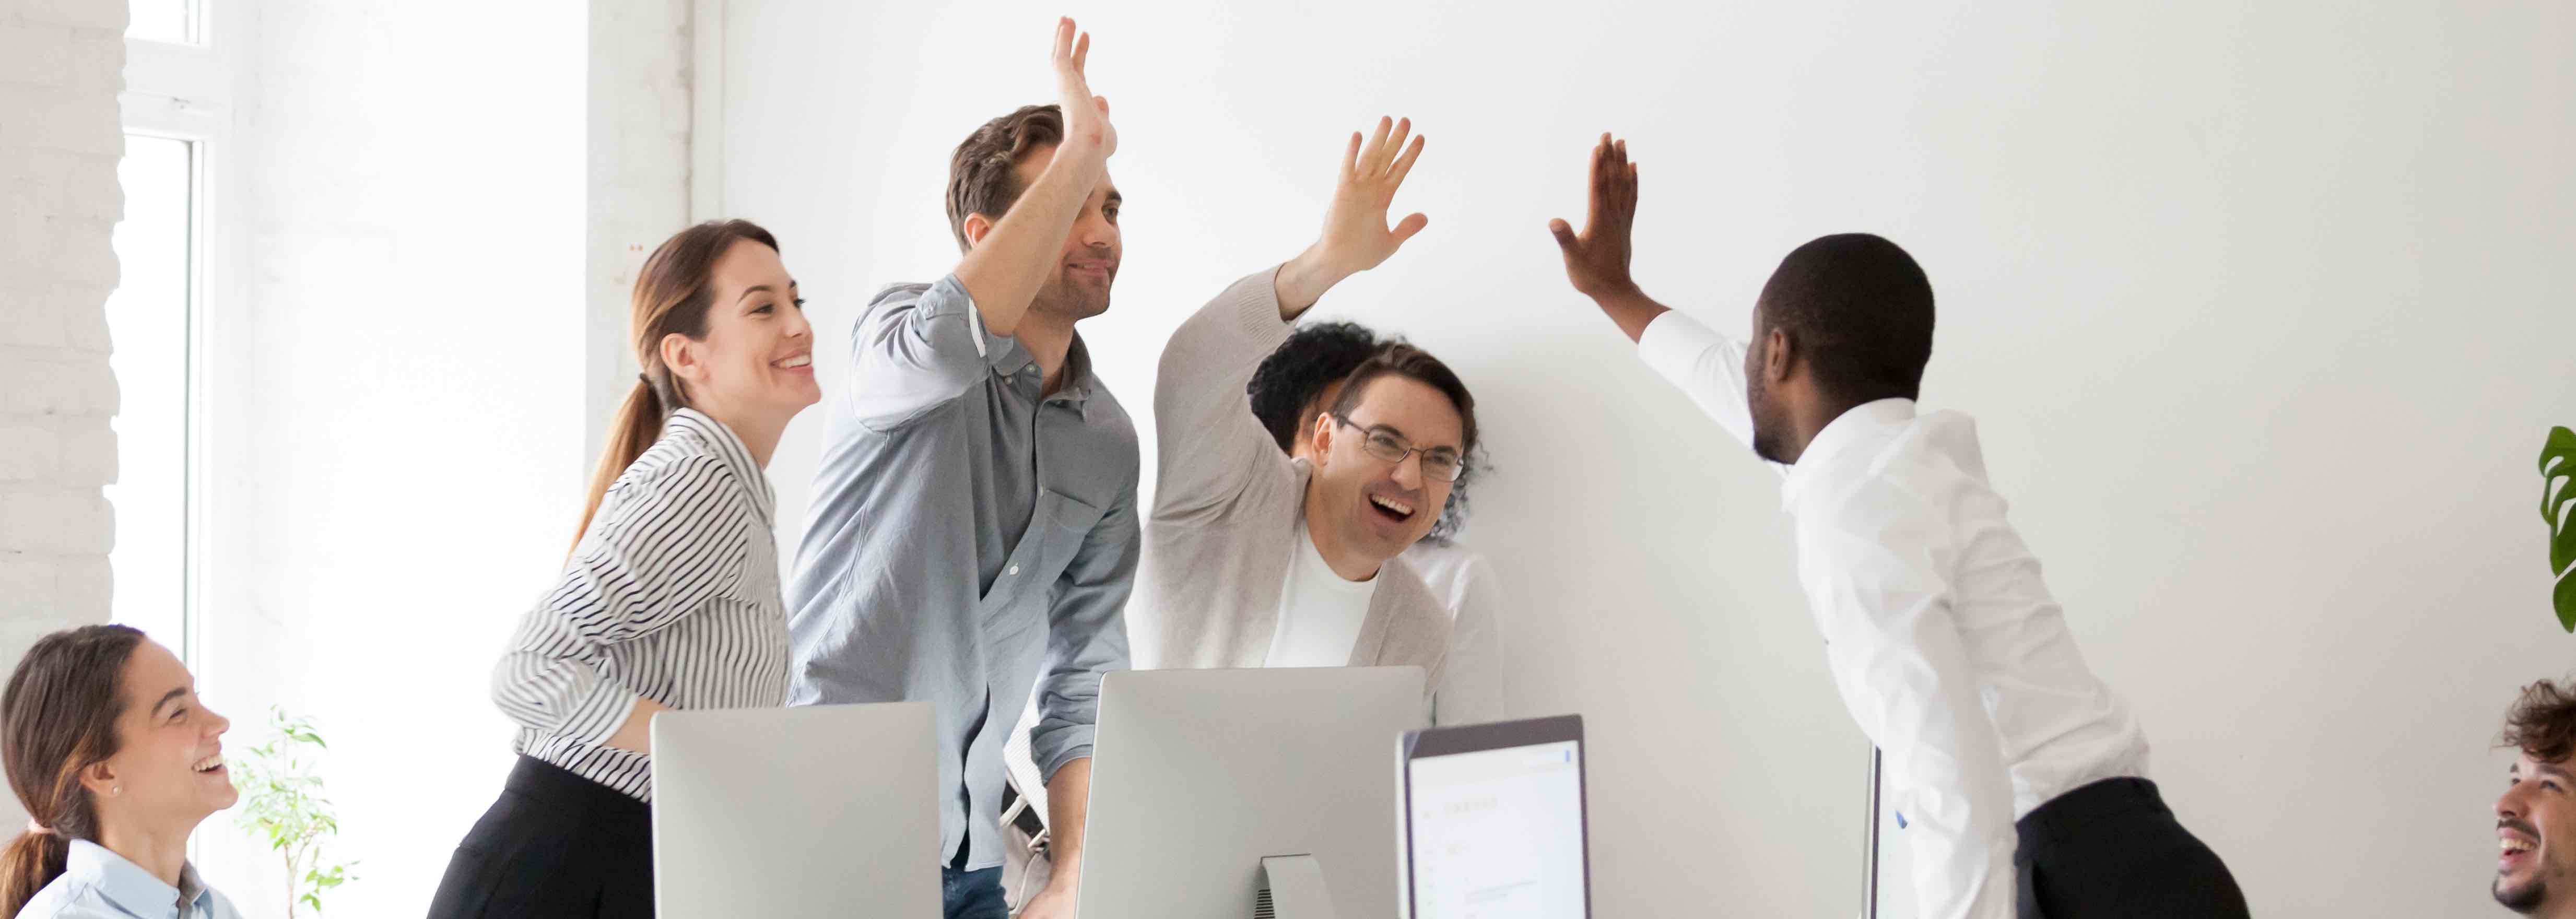 Team Building Inspiration for your Key Account Managers